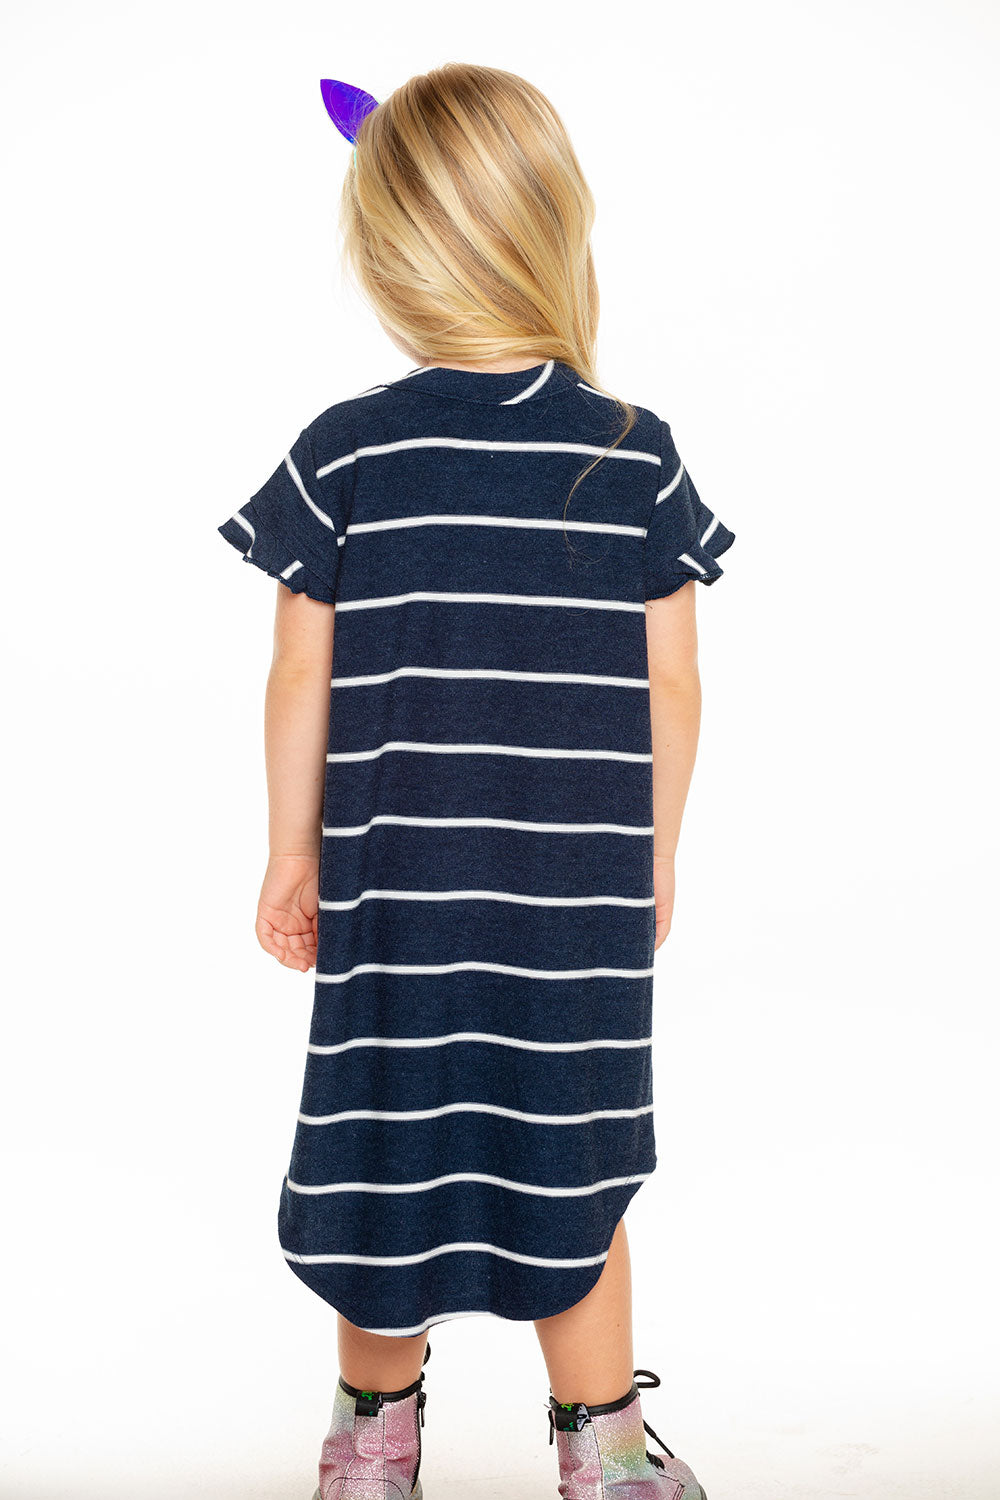 Cozy Knit Ruffle Short Sleeve Shirttail Mini Dress in Stripe [product_type] chaserbrand4.myshopify.com